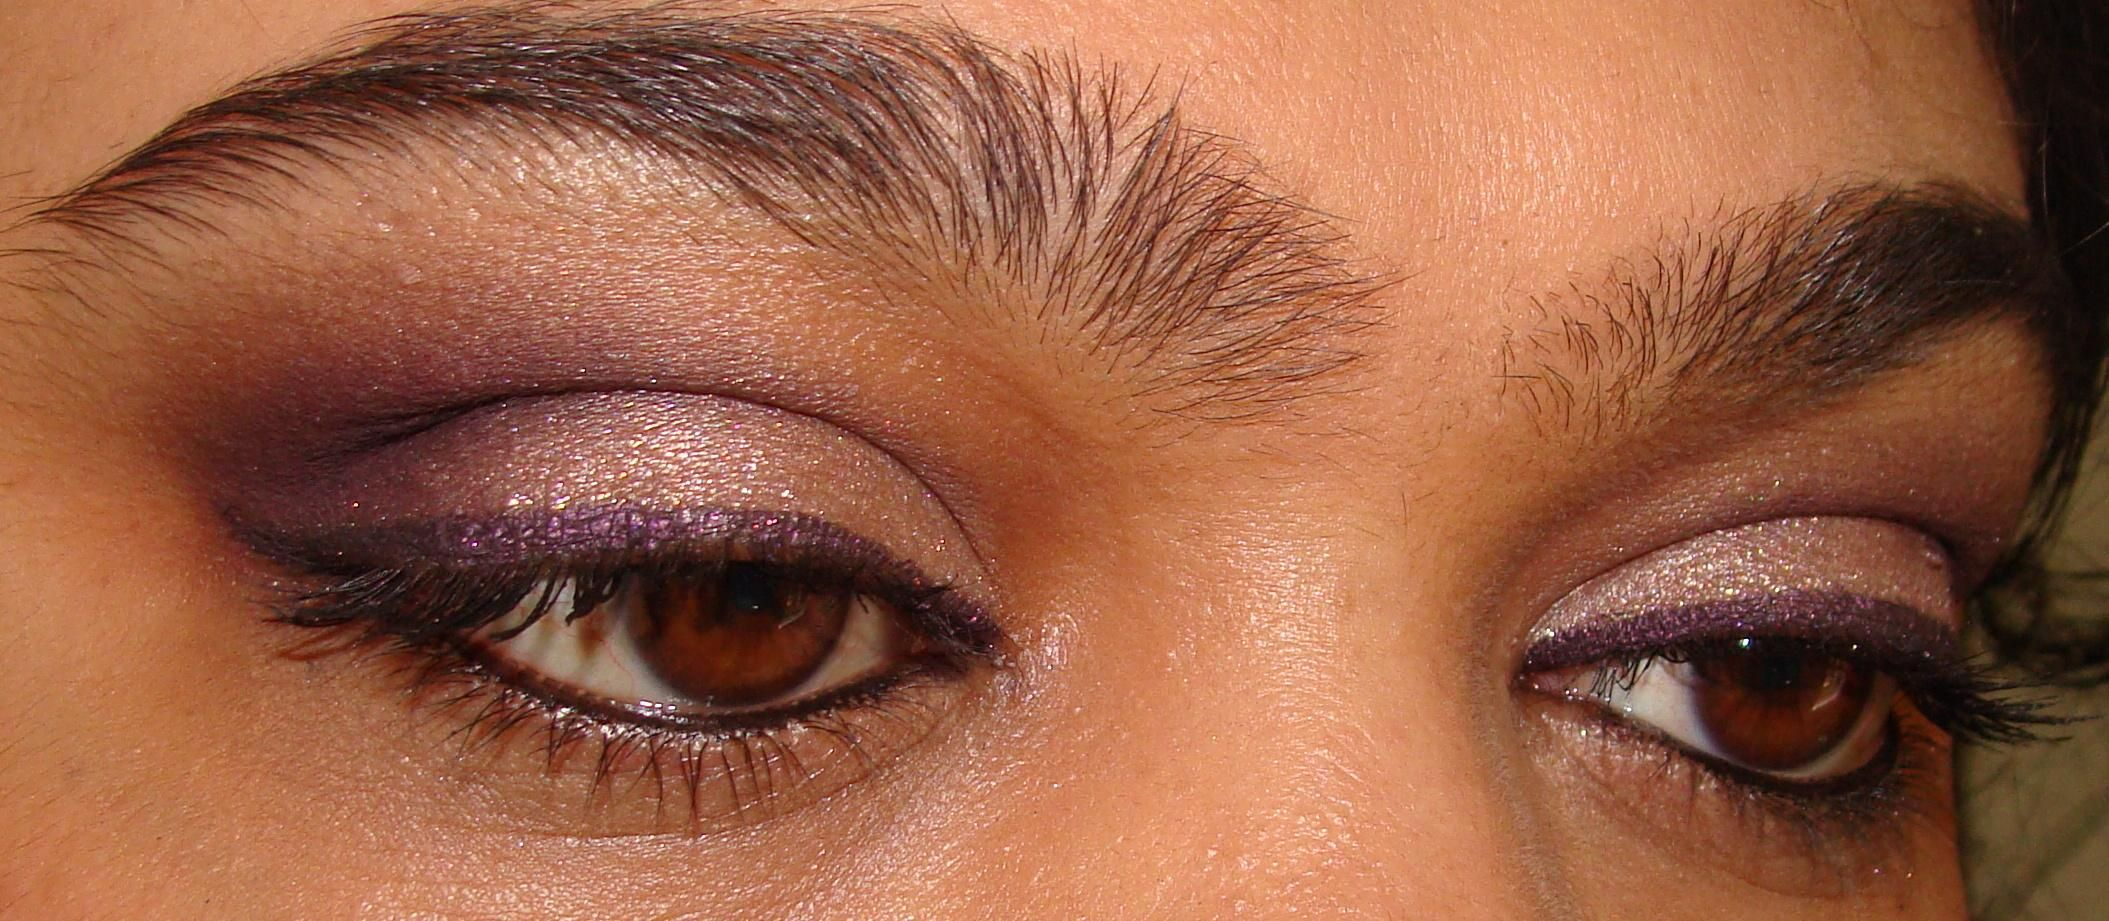 MAC fig http://www.indyabeauty.com/2011/10/macup-look-fig-1-and-crosswires/